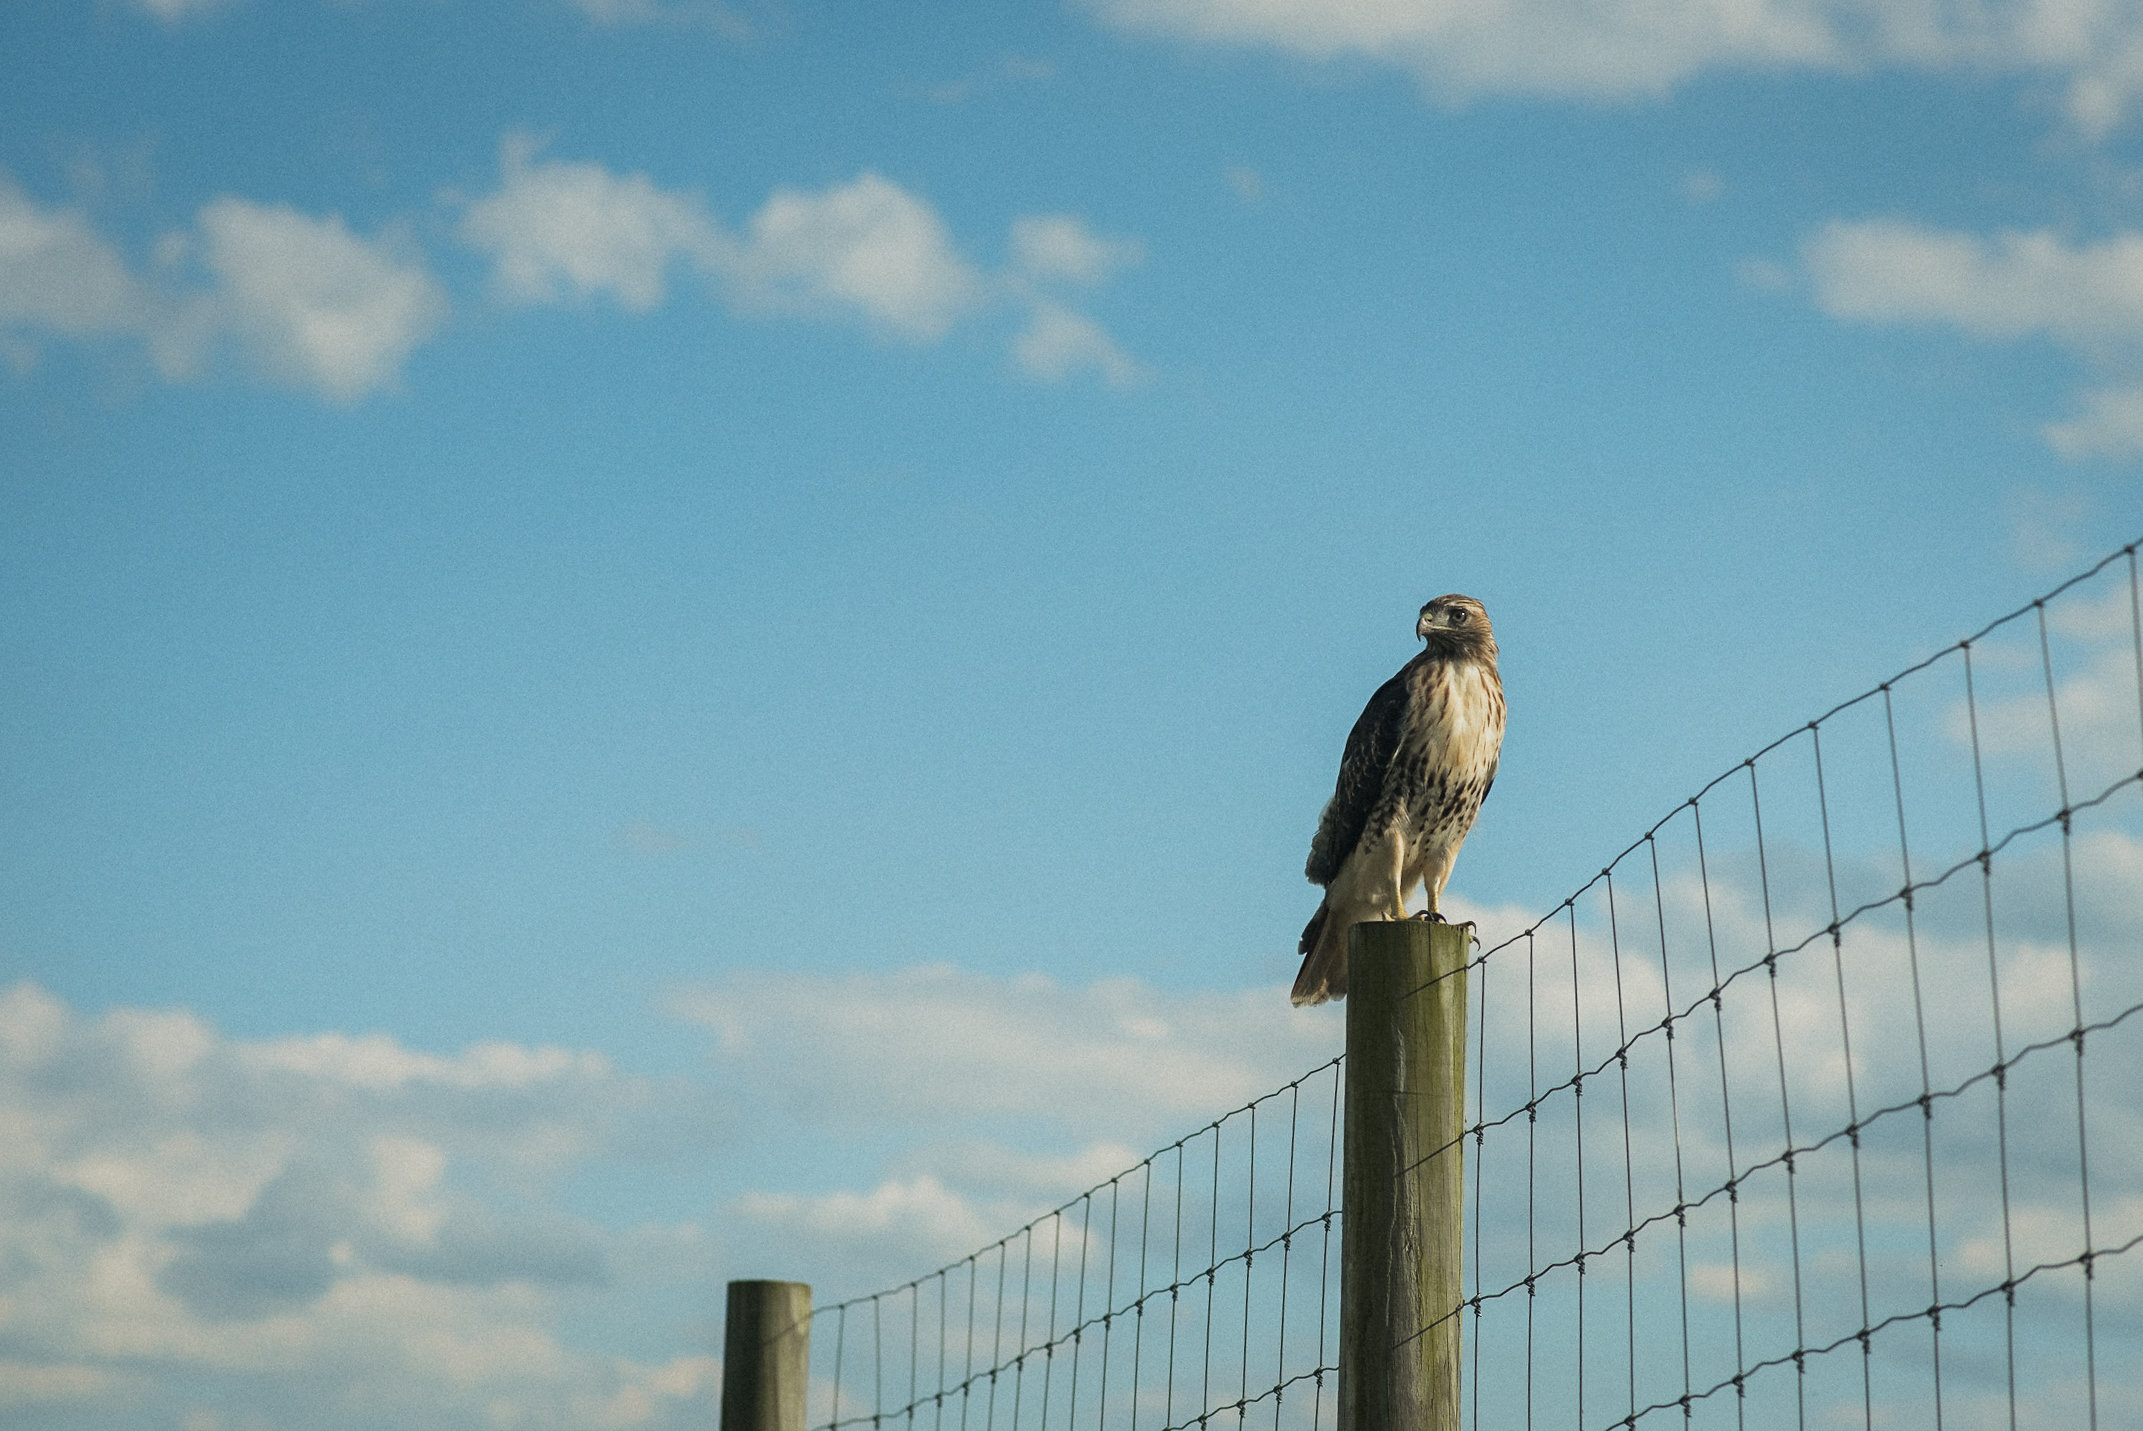 Hawk sitting on fence post